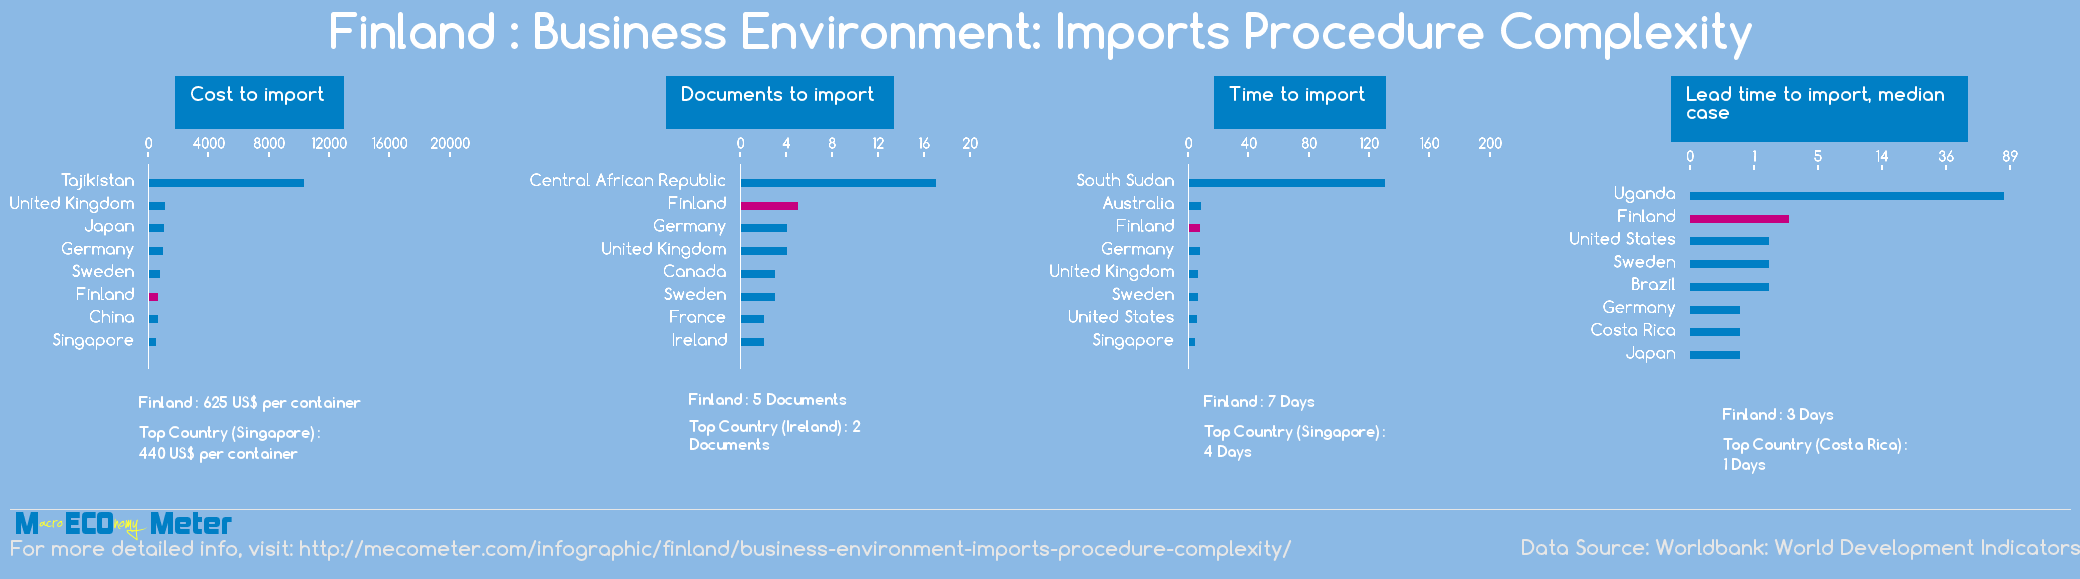 Finland : Business Environment: Imports Procedure Complexity